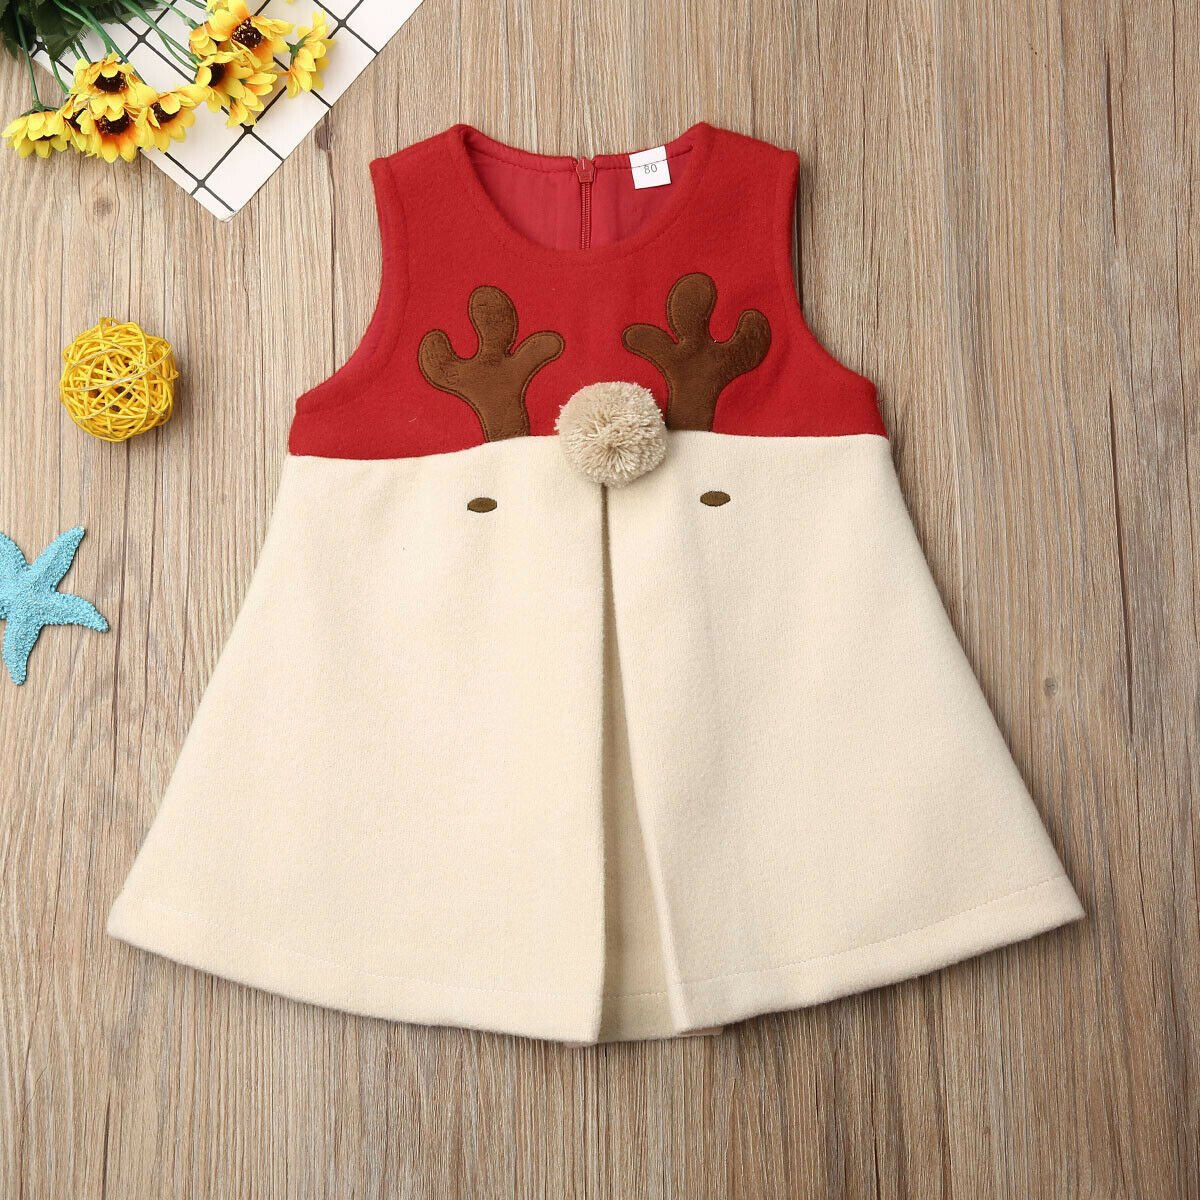 Uk Christmas Dress Newborn Baby Girls Clothes Hairy Christmas Xmas Vest Outwear Antlers Clothes 1 5t Dresses Aliexpress